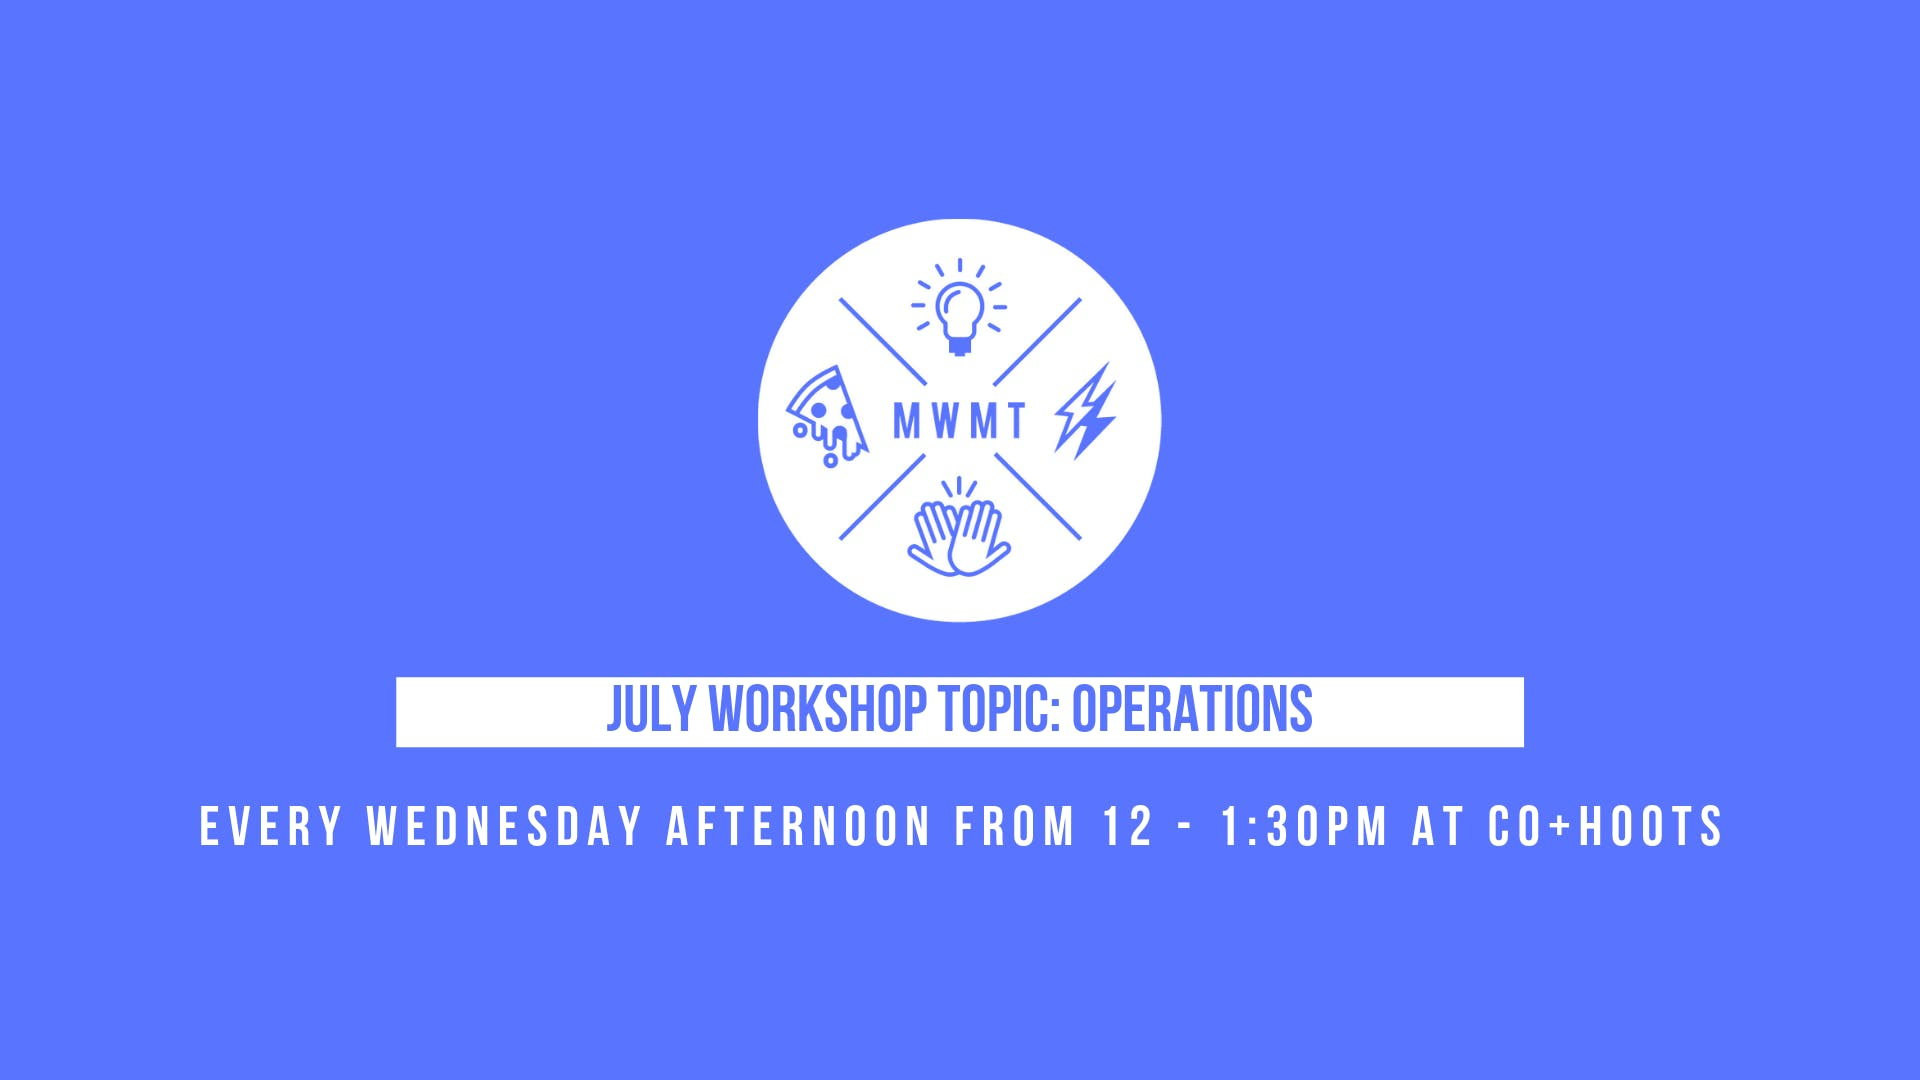 Efficiency in Business: Process, Templatization, Delegation, and Automation - Operations Workshop